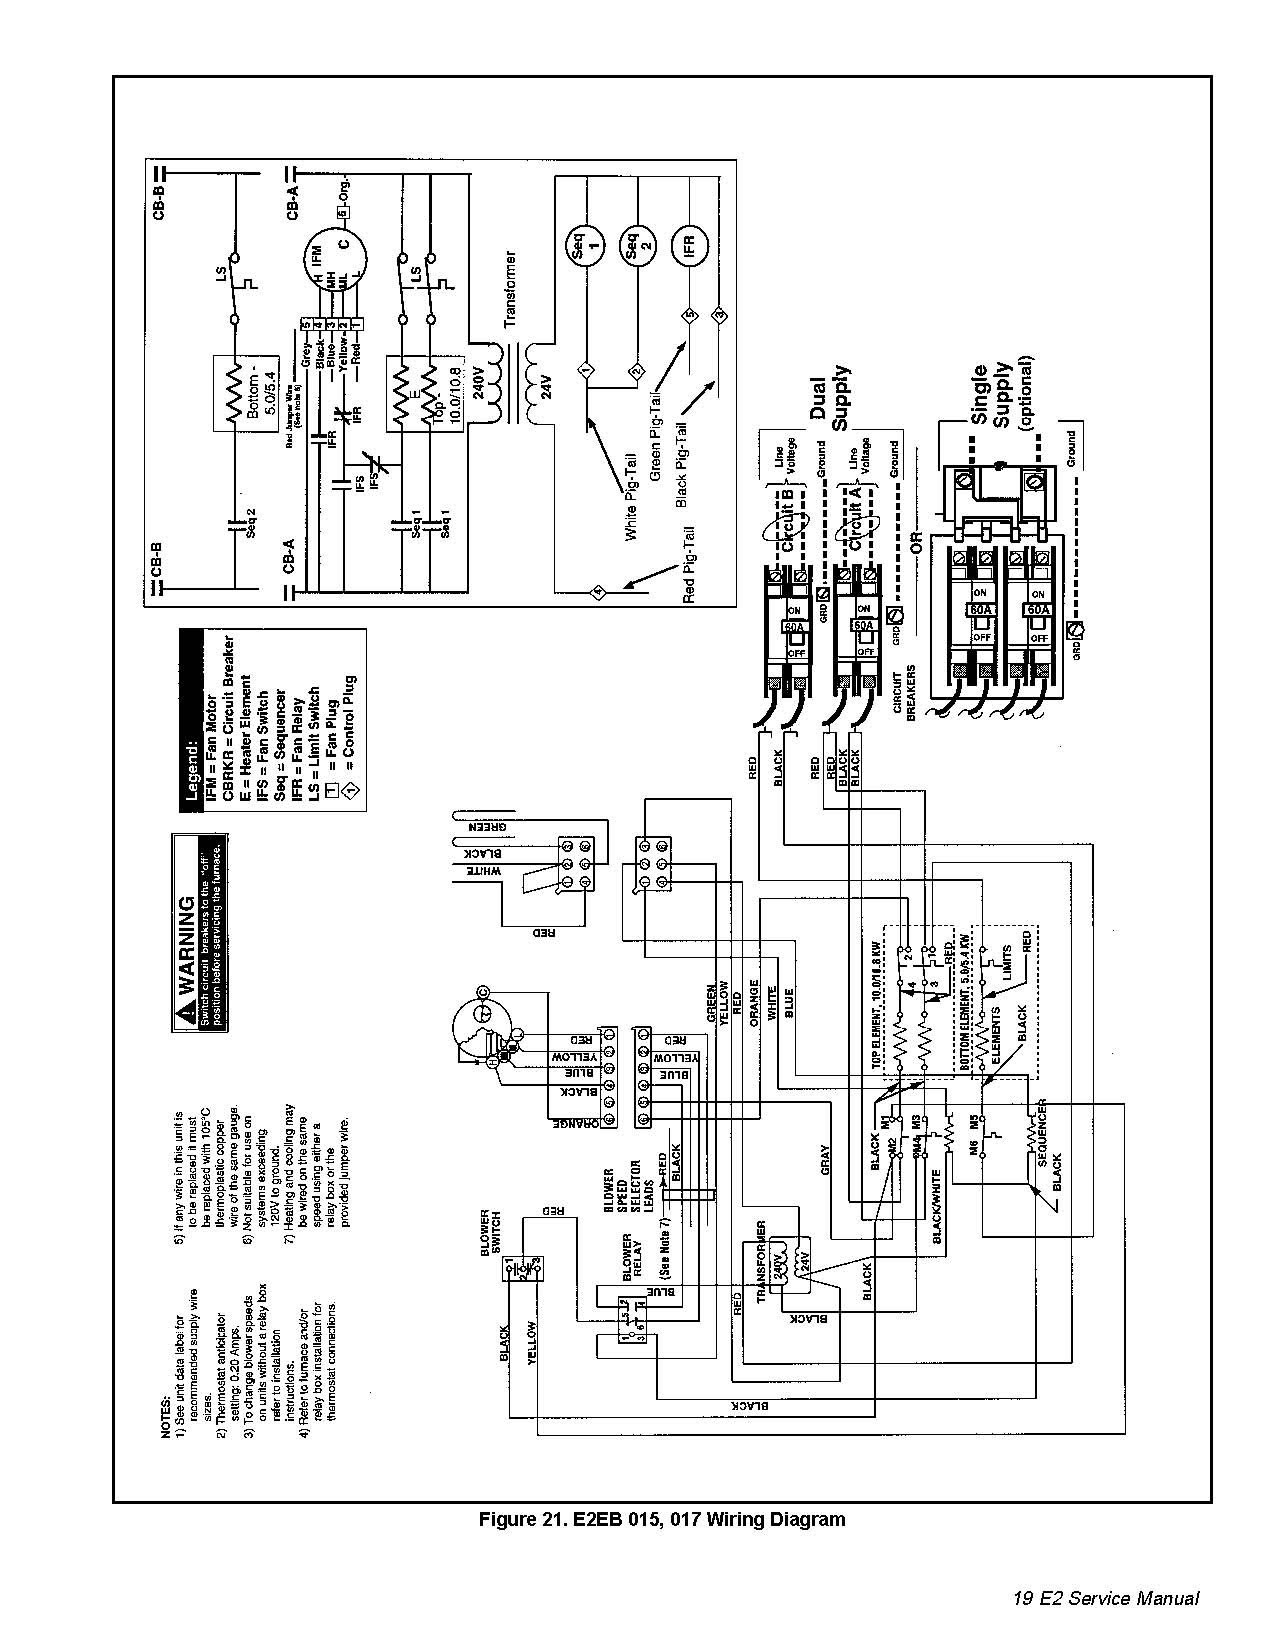 Miller Electric Furnace Wiring Diagram - Wiring Diagram Data - Nordyne Wiring Diagram Electric Furnace